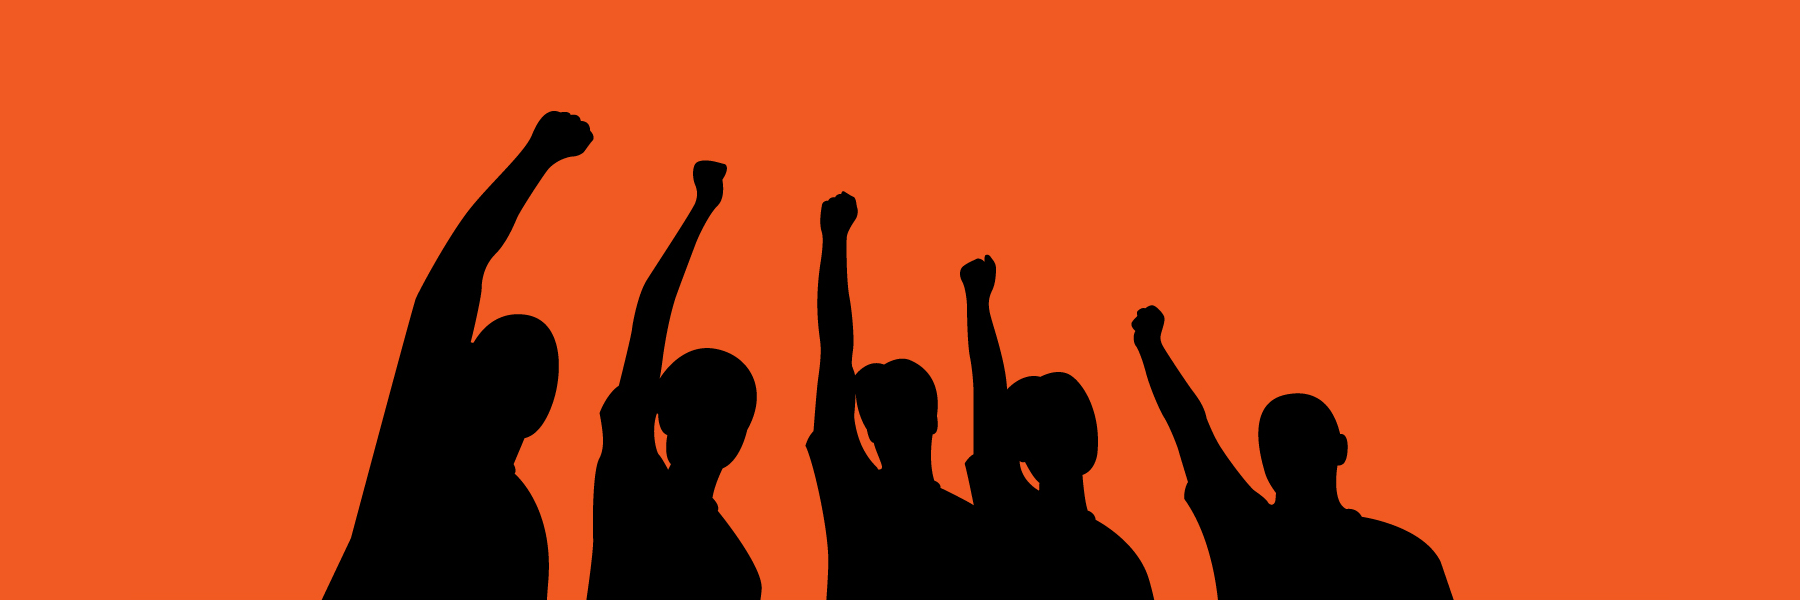 people-power-banner